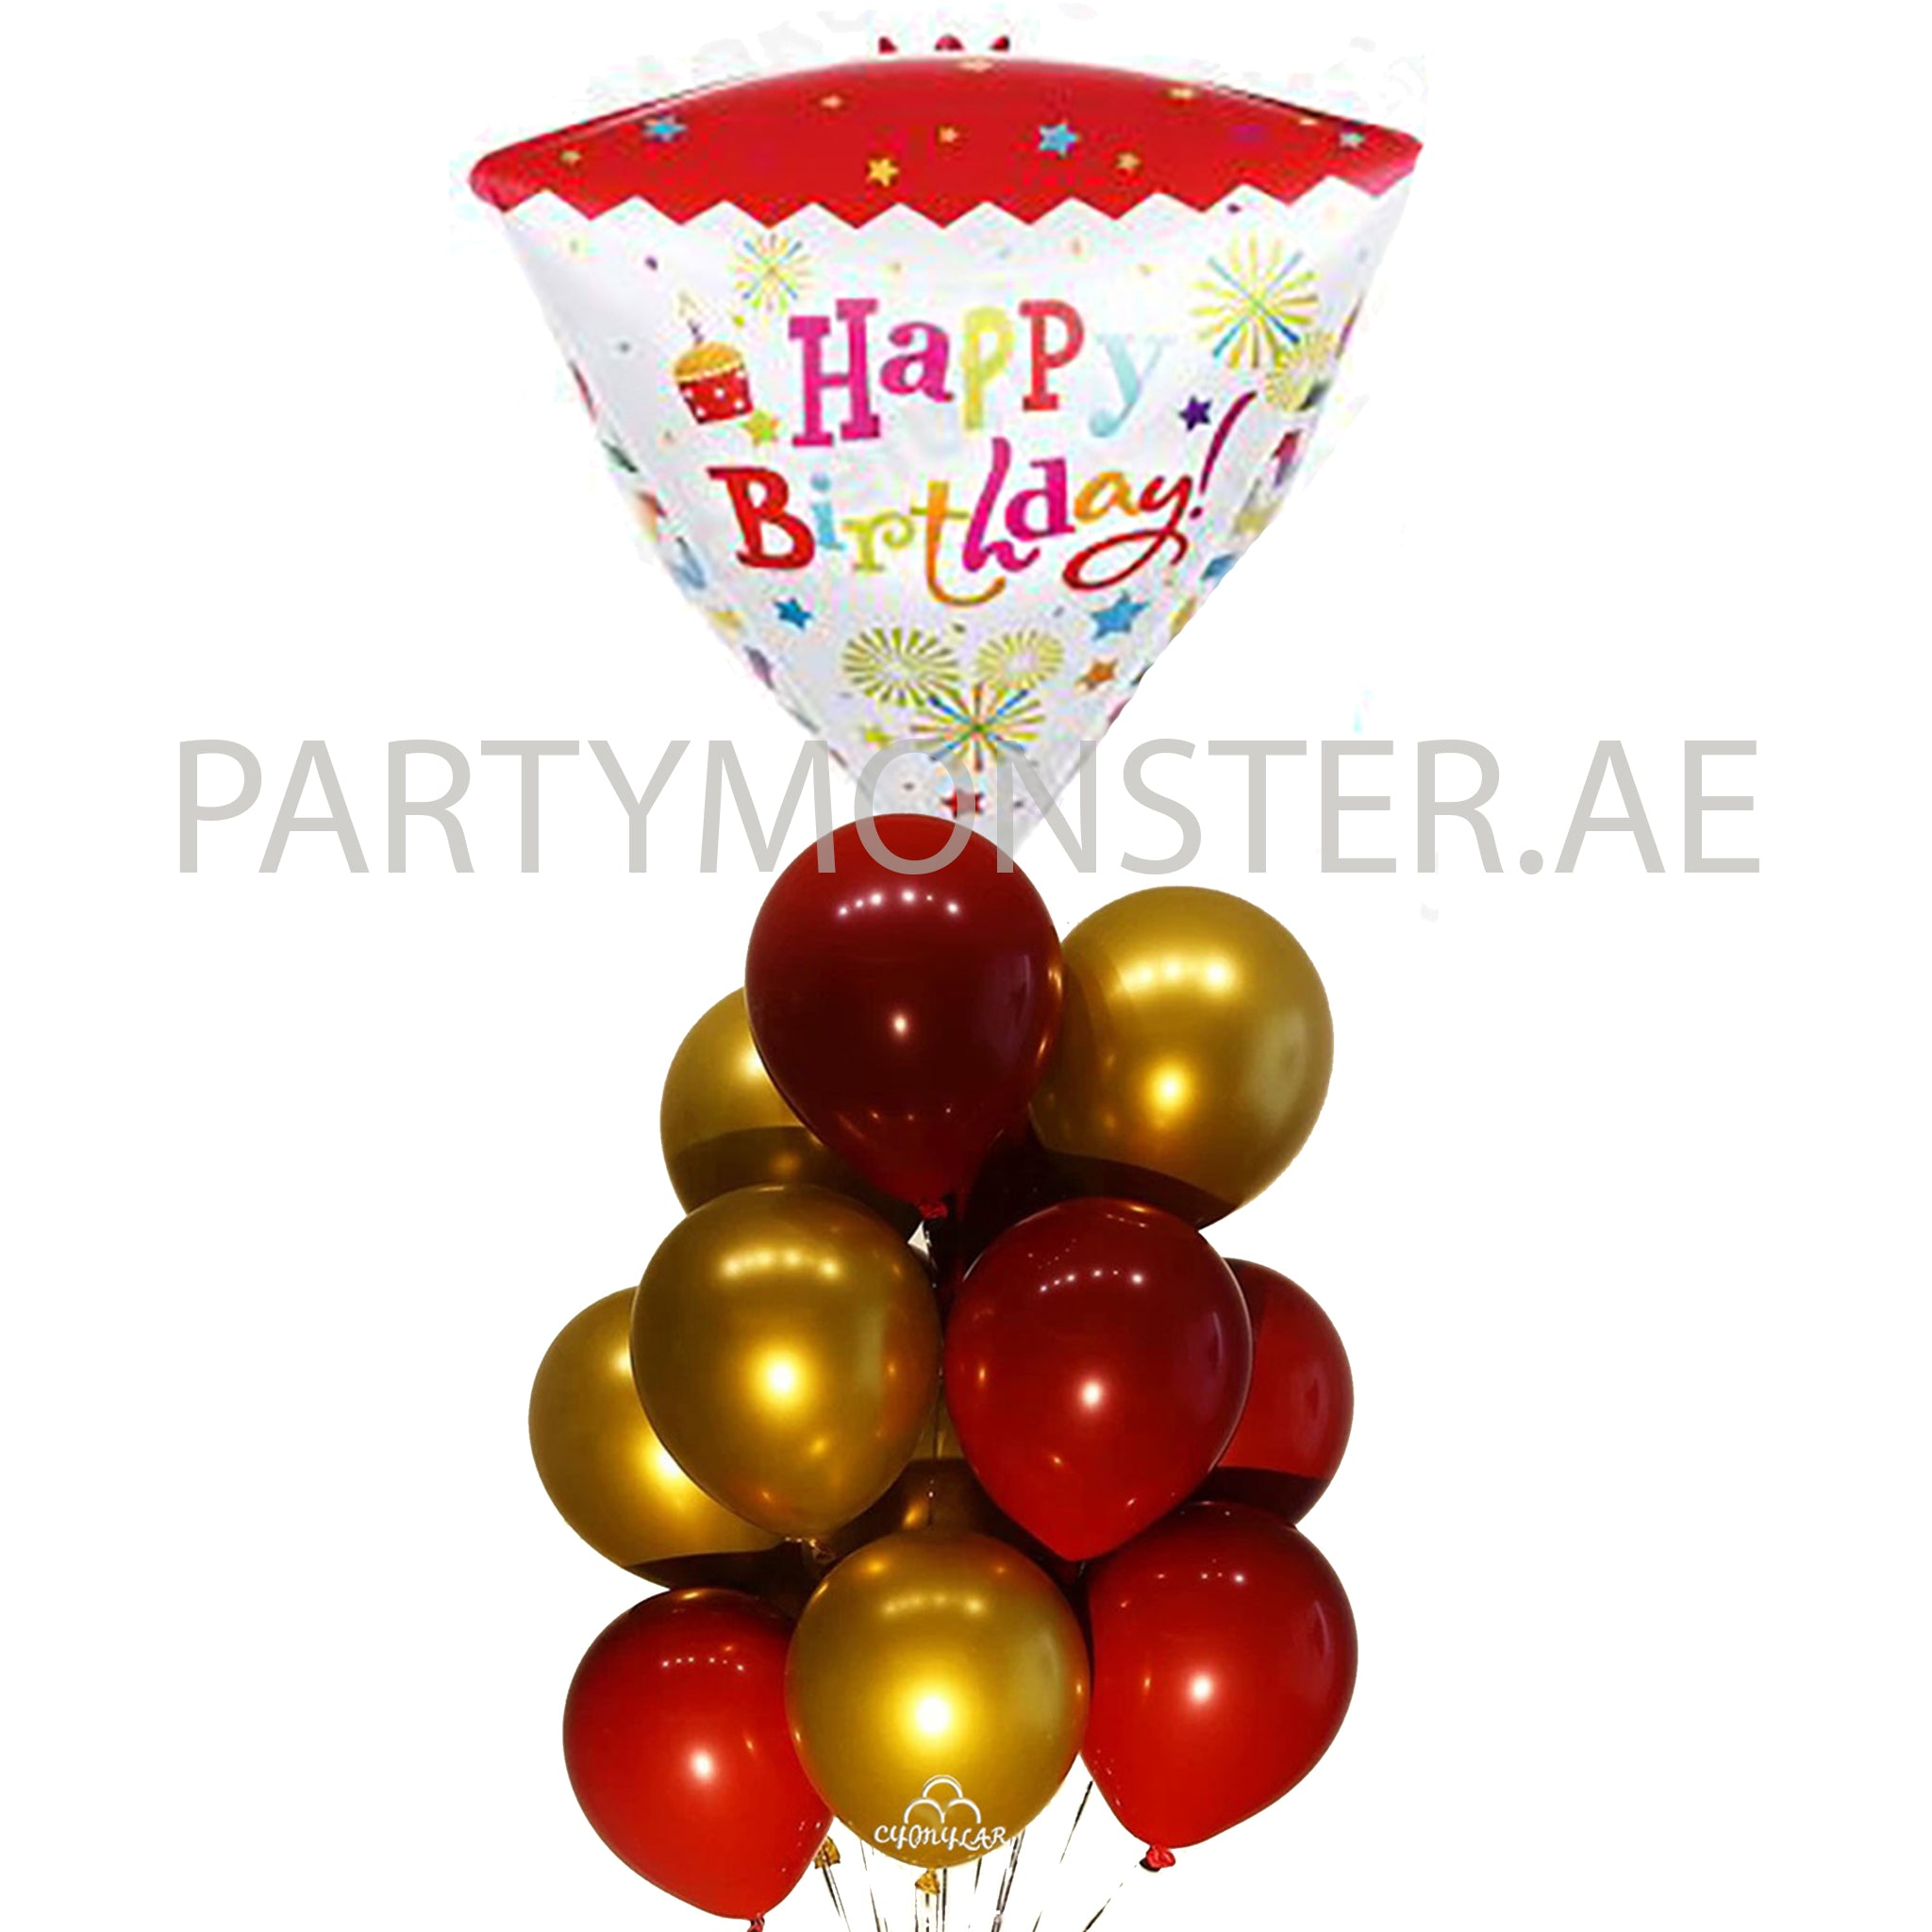 Birthday diamond shape foil and latex balloons bouquet 2 - PartyMonster.ae